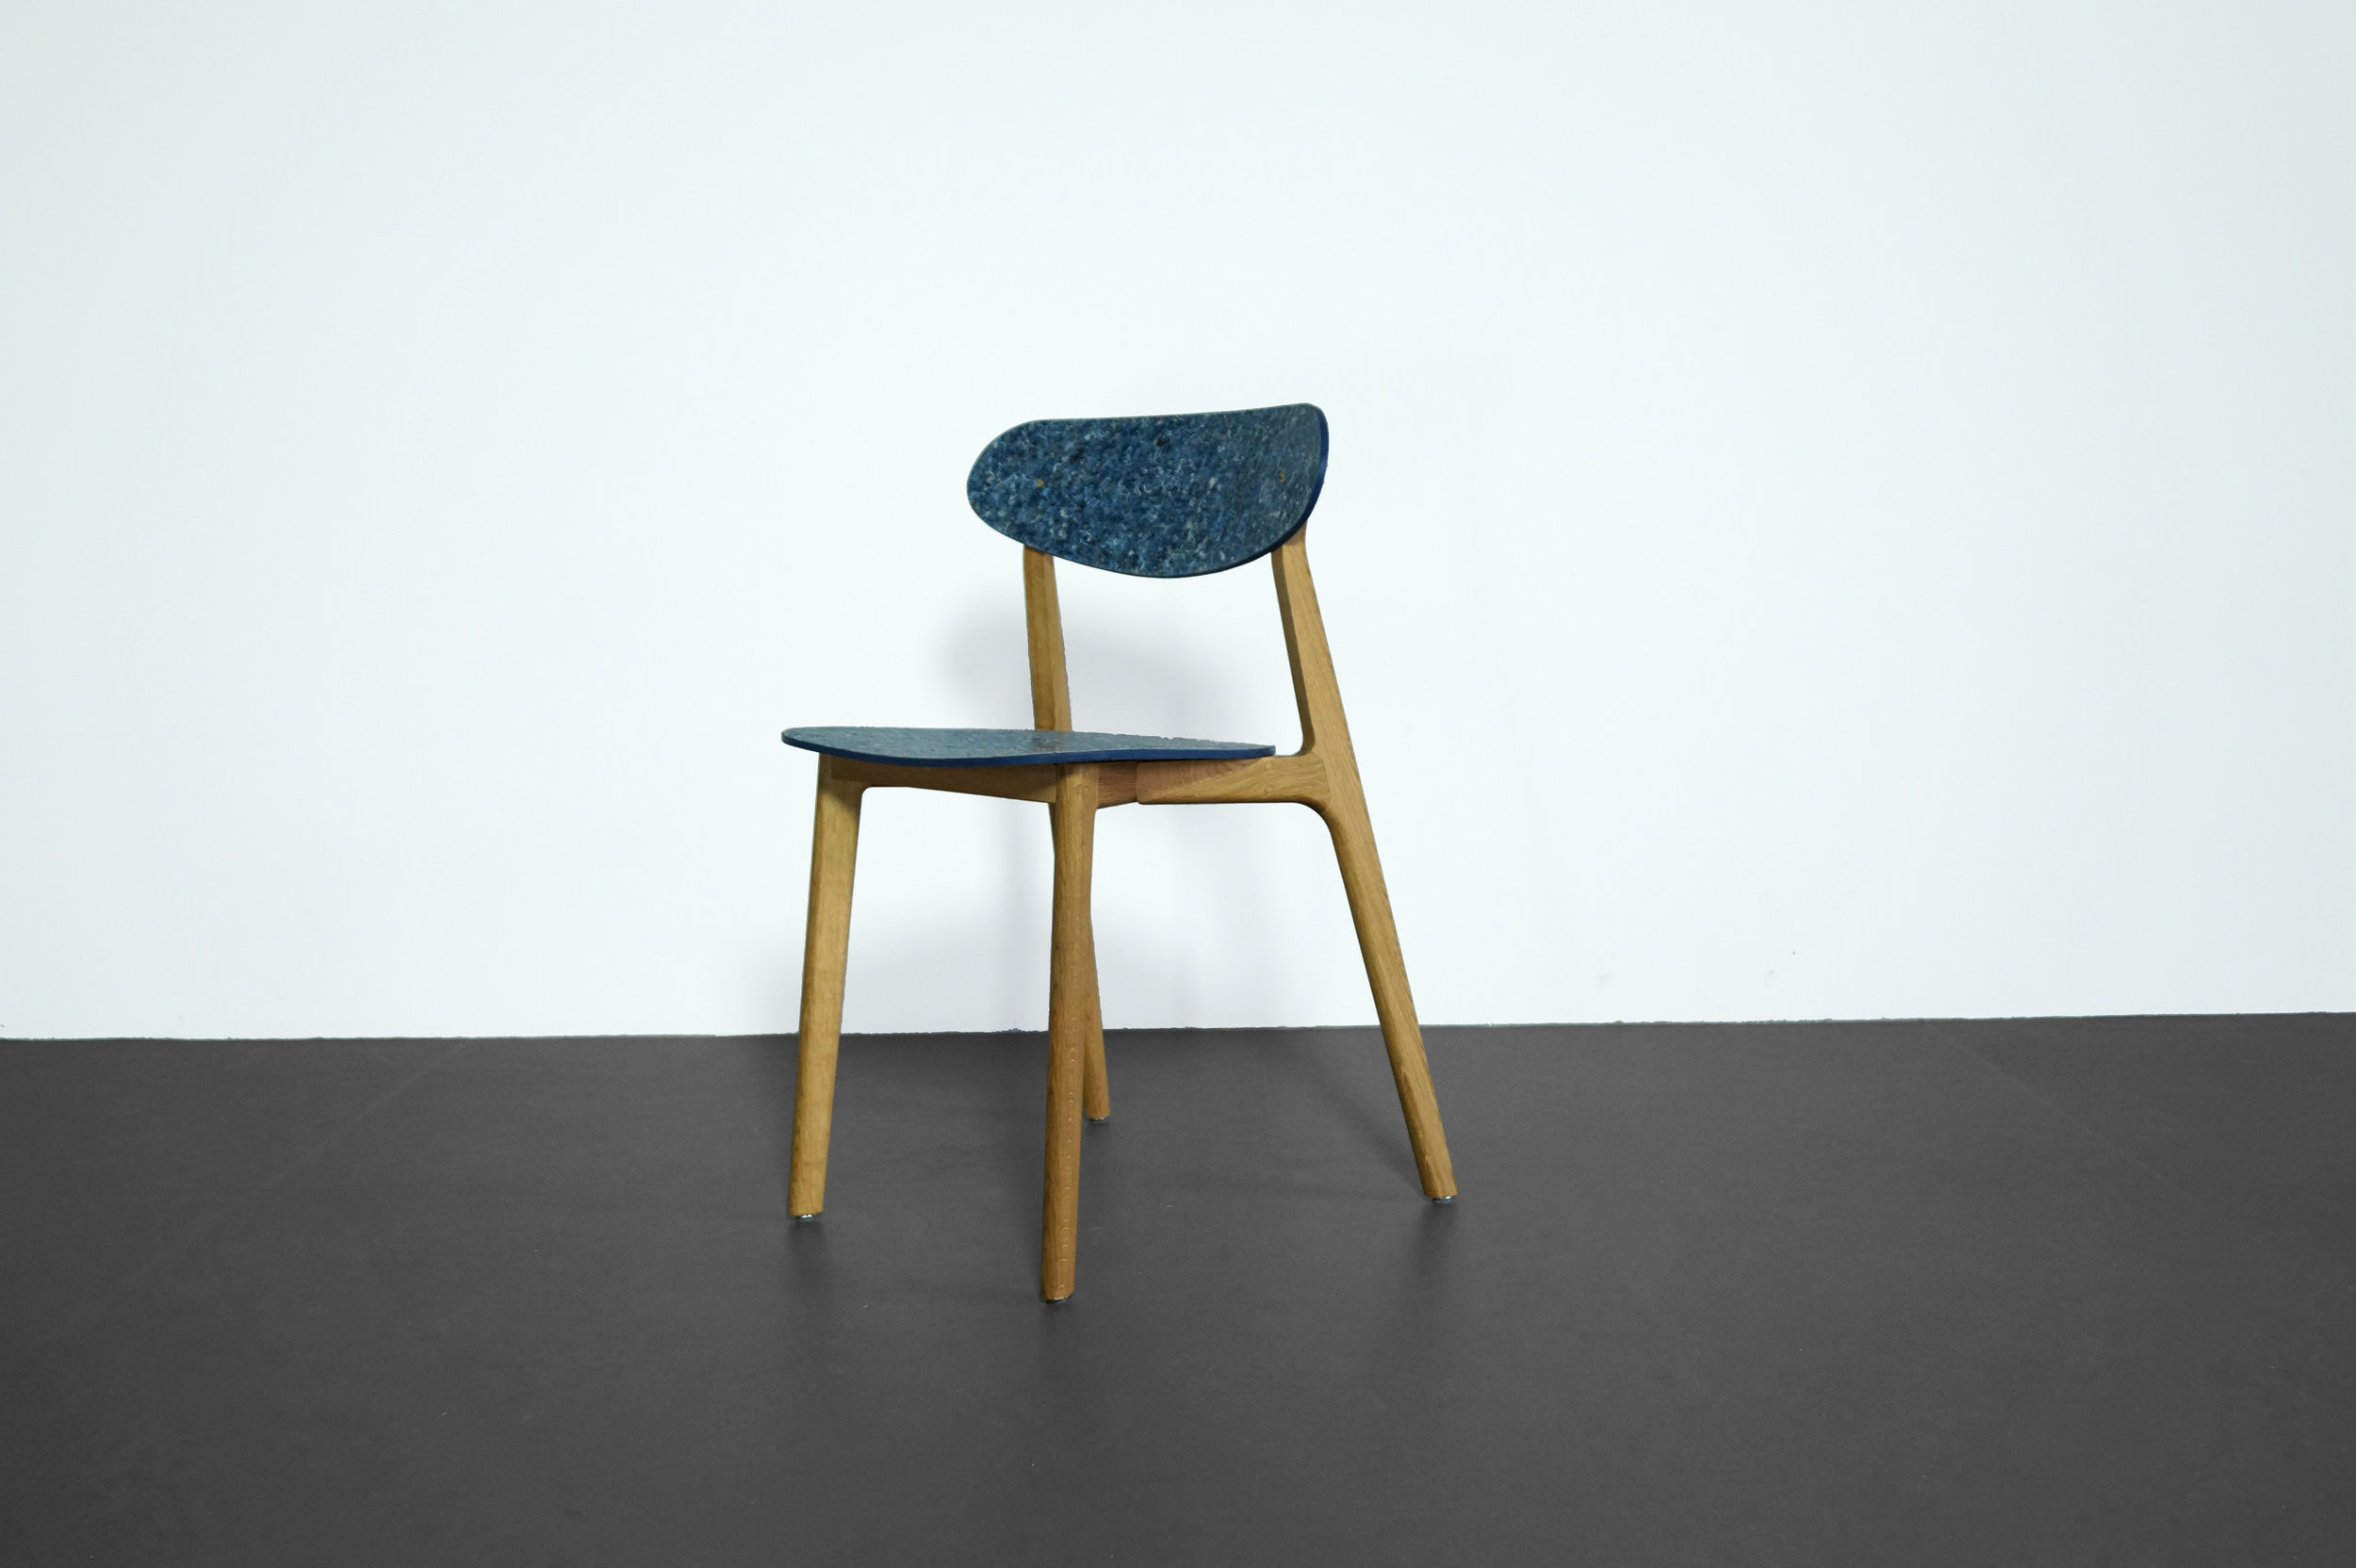 Ubu_Chair_Denim_01.JPG